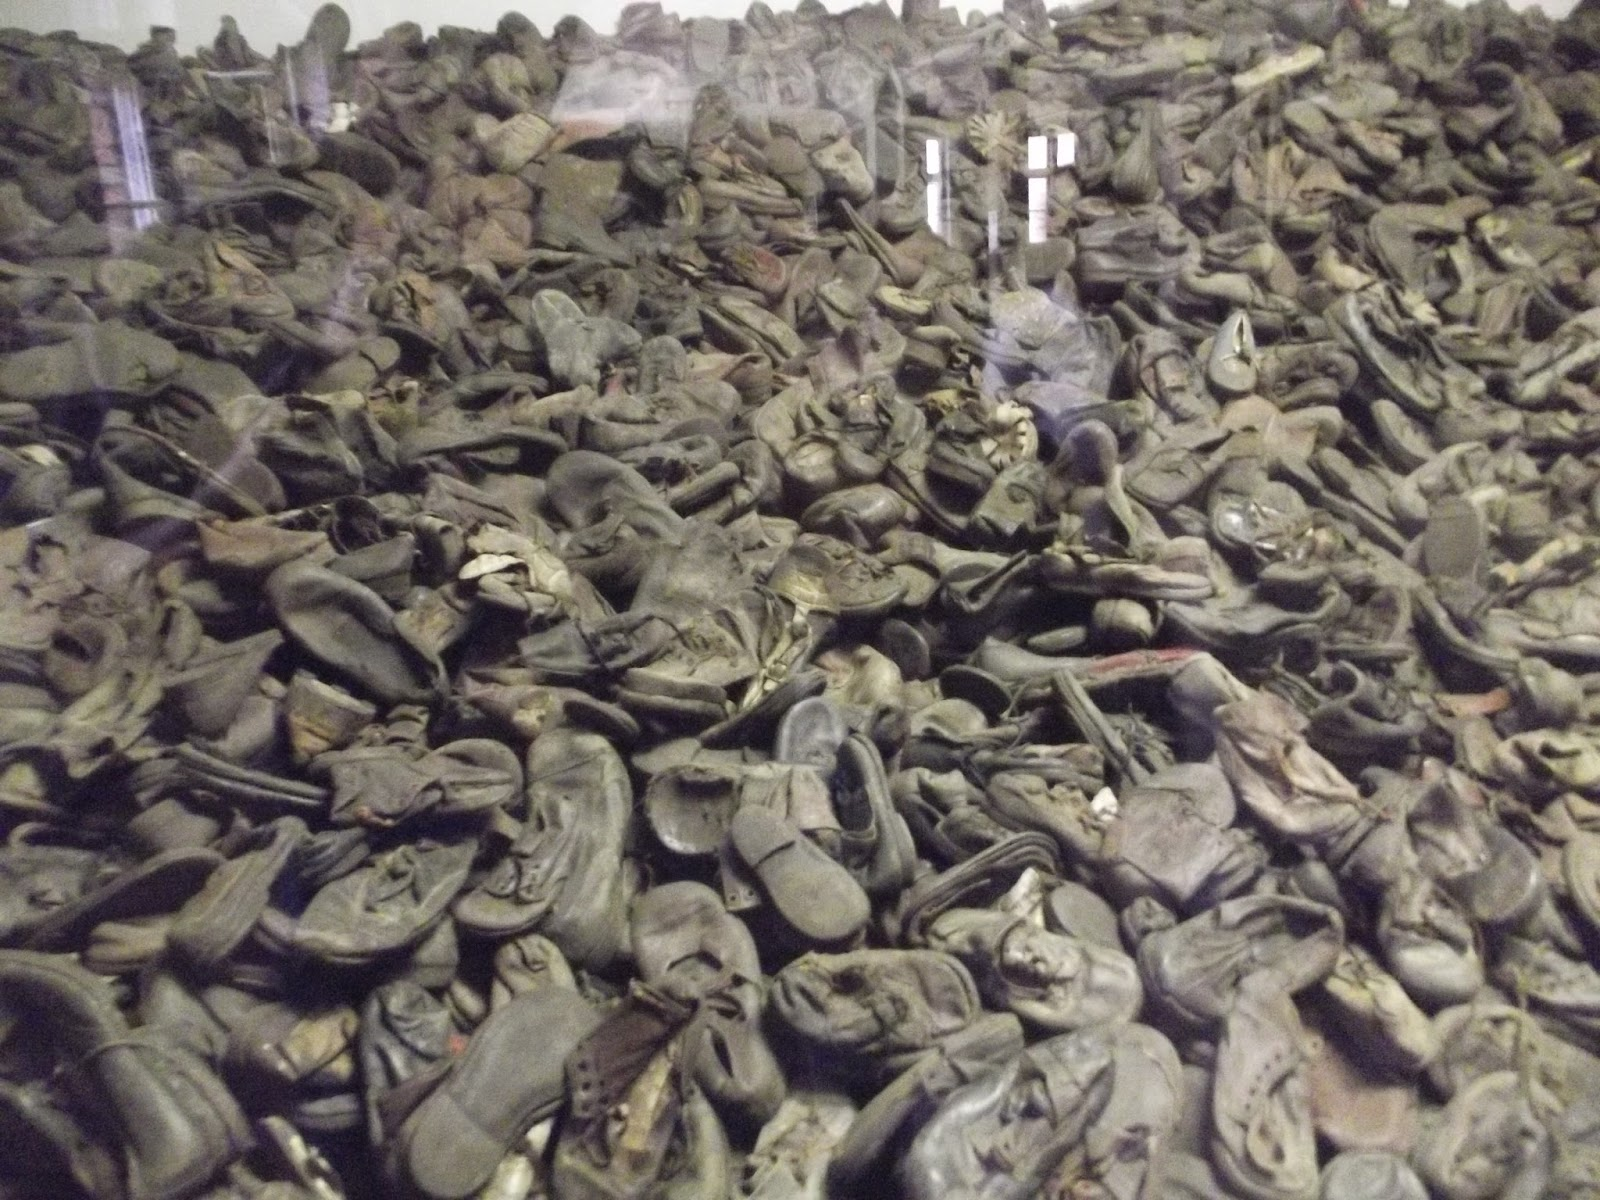 Auschwitz prisoner shoes